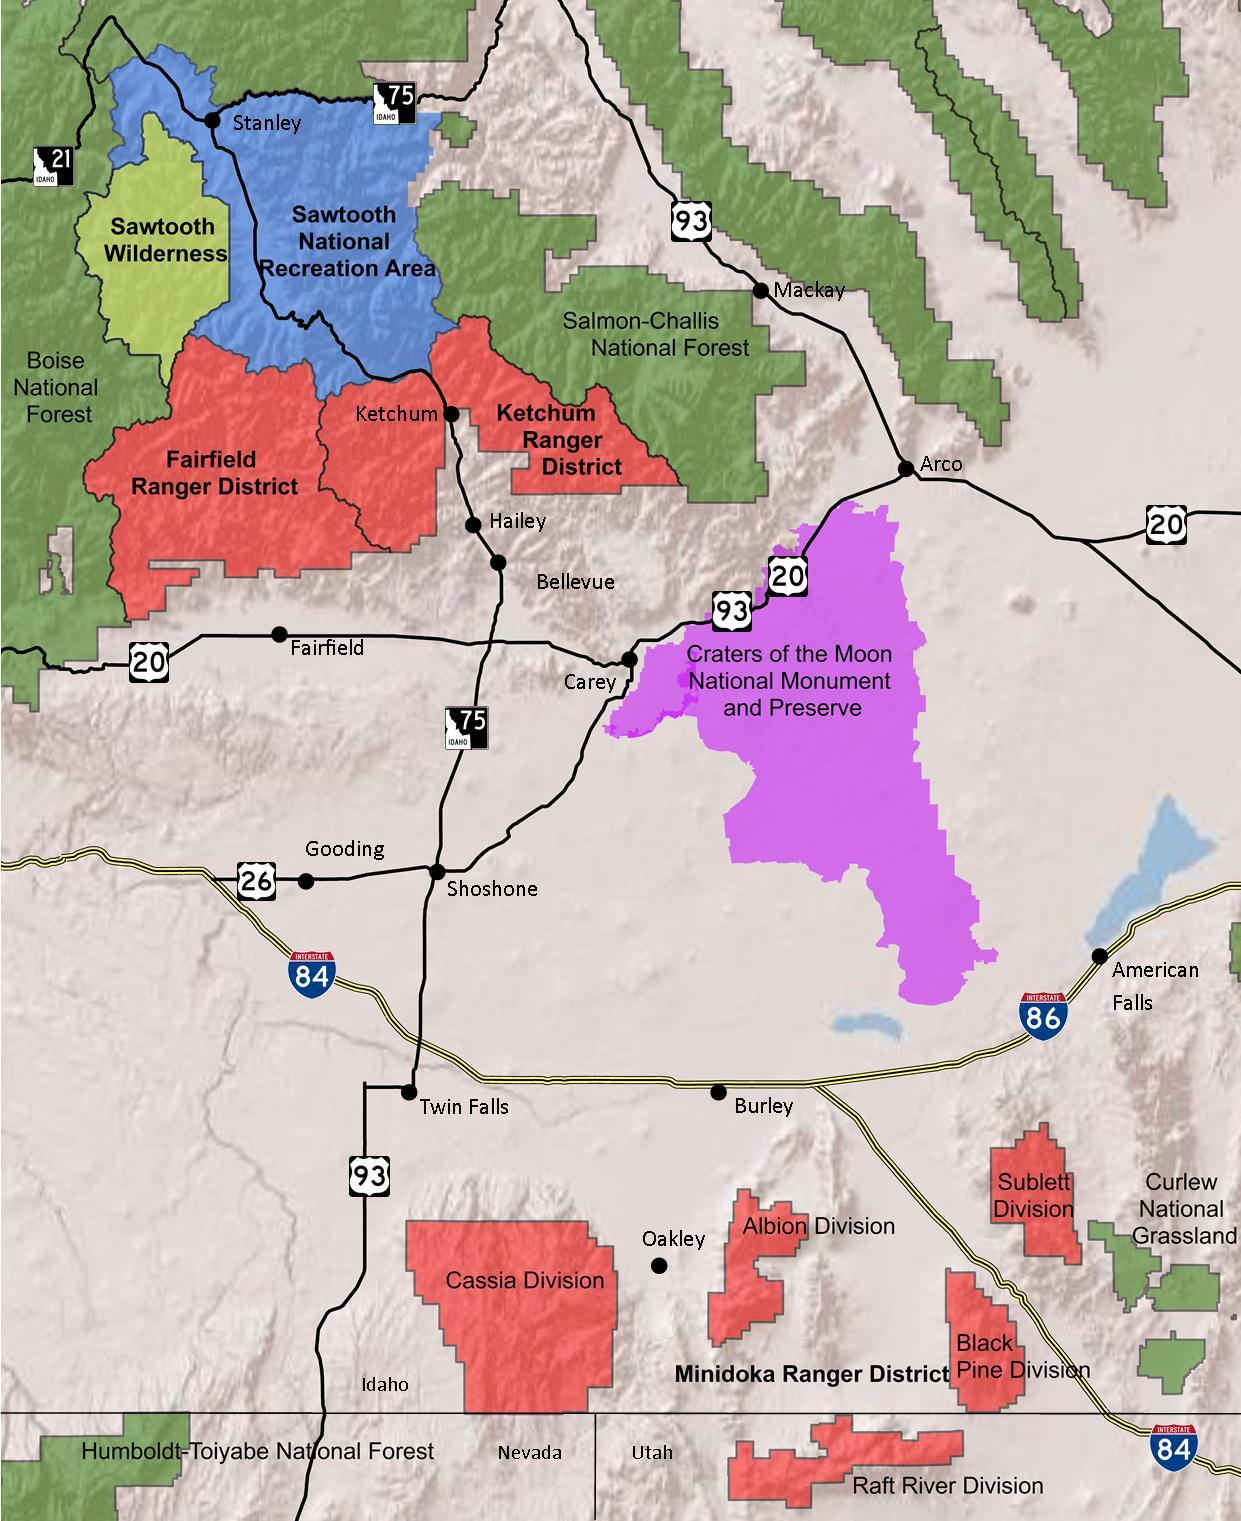 File:Sawtooth National Forest Map with roads.jpg - Wikimedia ... on ketchum idaho road map, meridian idaho road map, big wood river idaho road map, boise idaho road map, warm lake idaho road map, ada county idaho road map, mccall idaho road map,